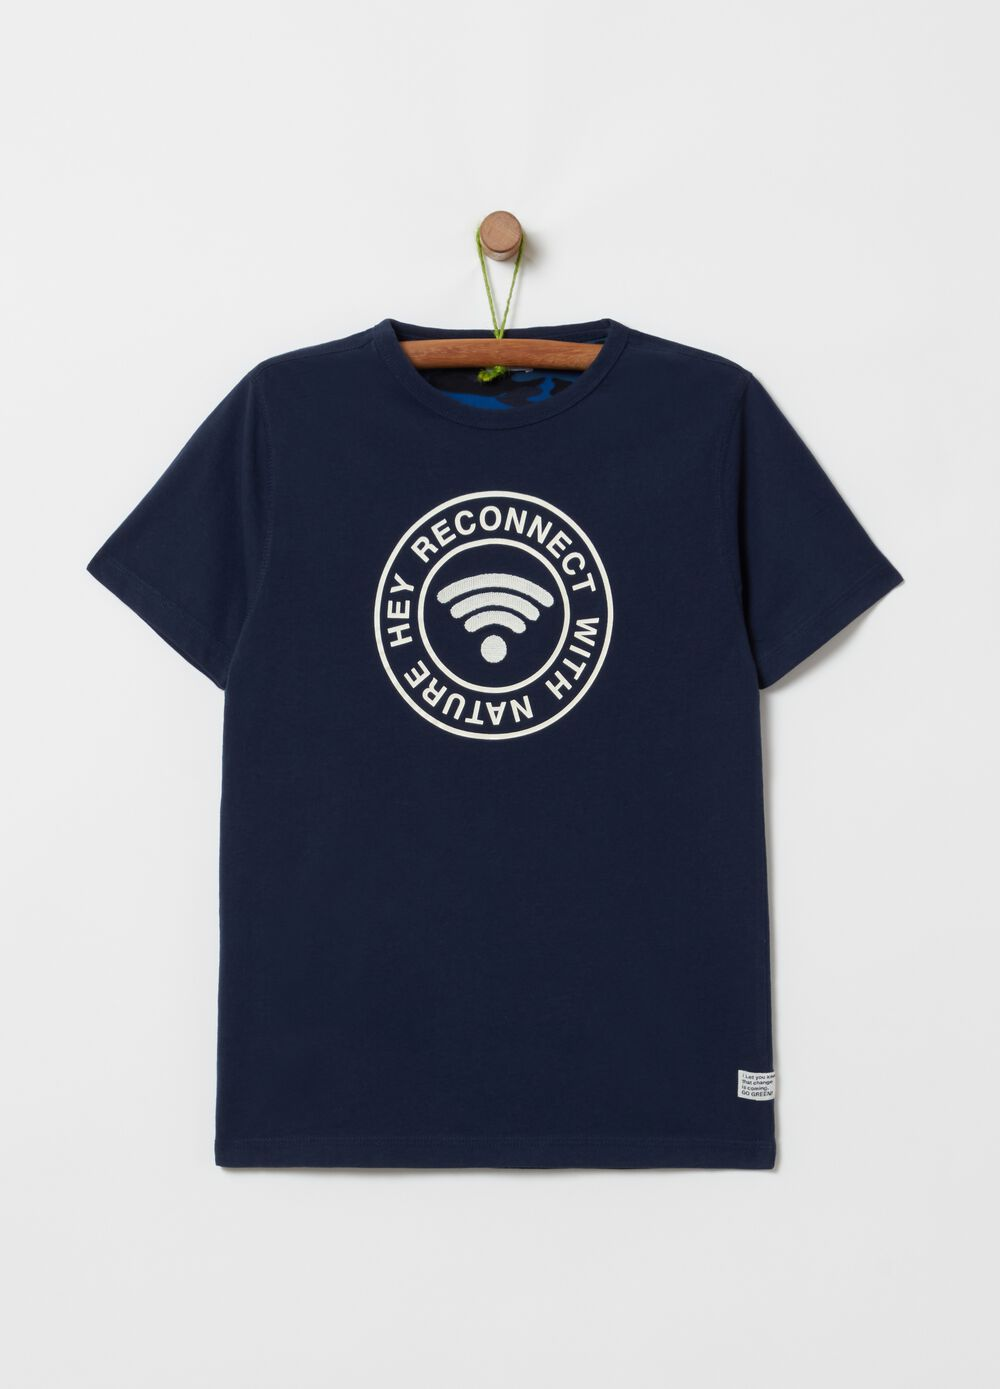 100% cotton T-shirt with print and embroidery